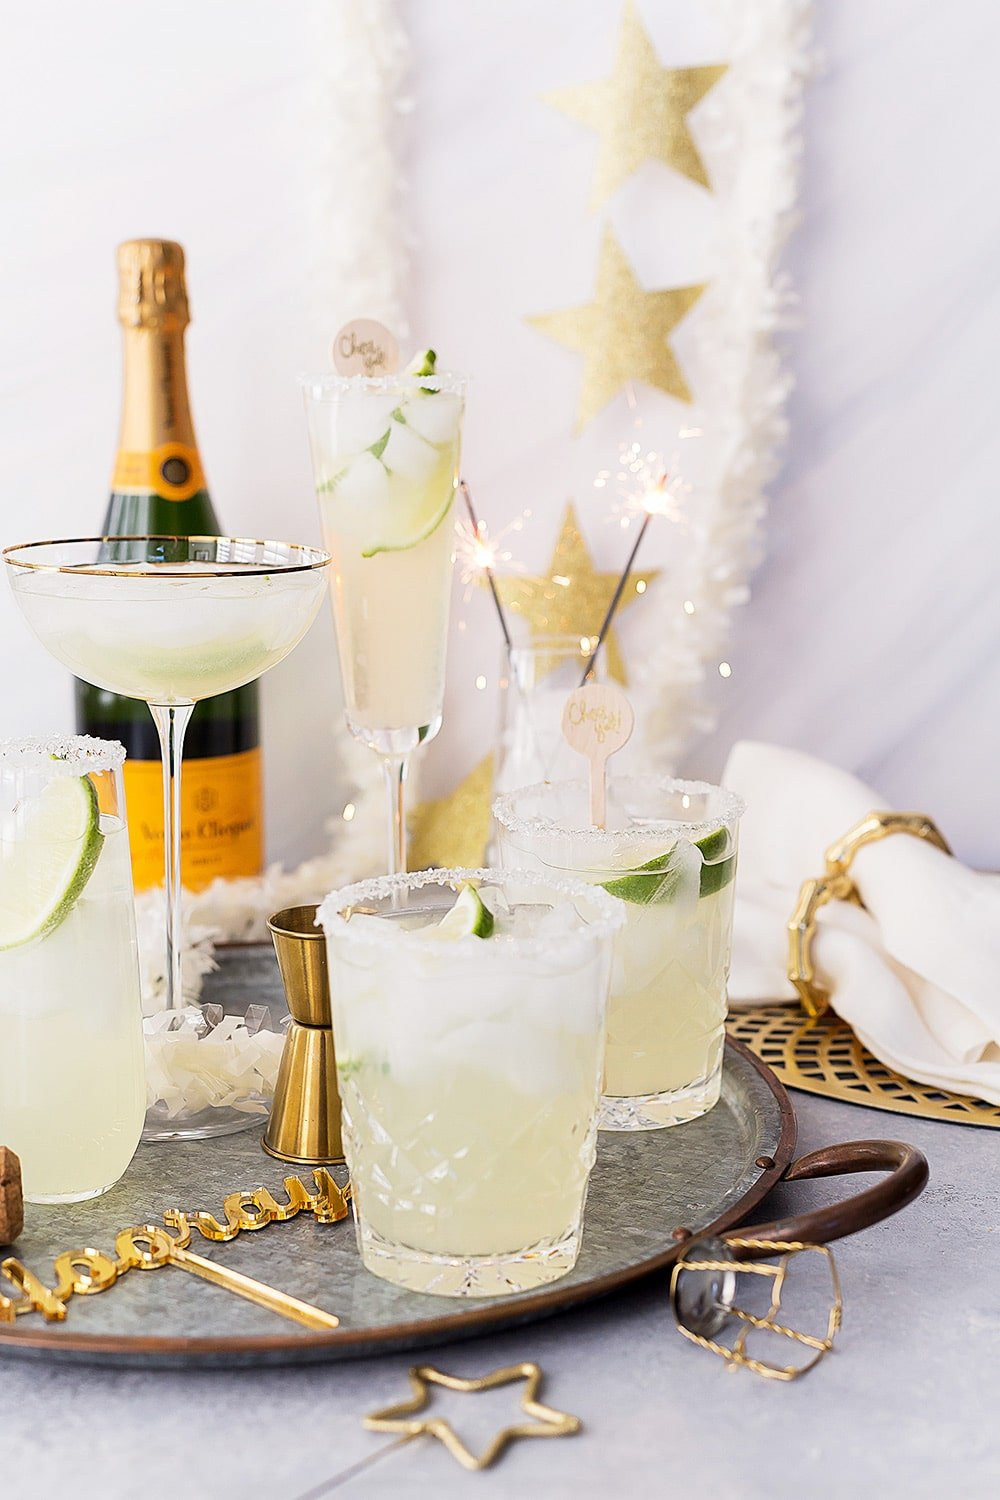 champagne margaritas in a glass